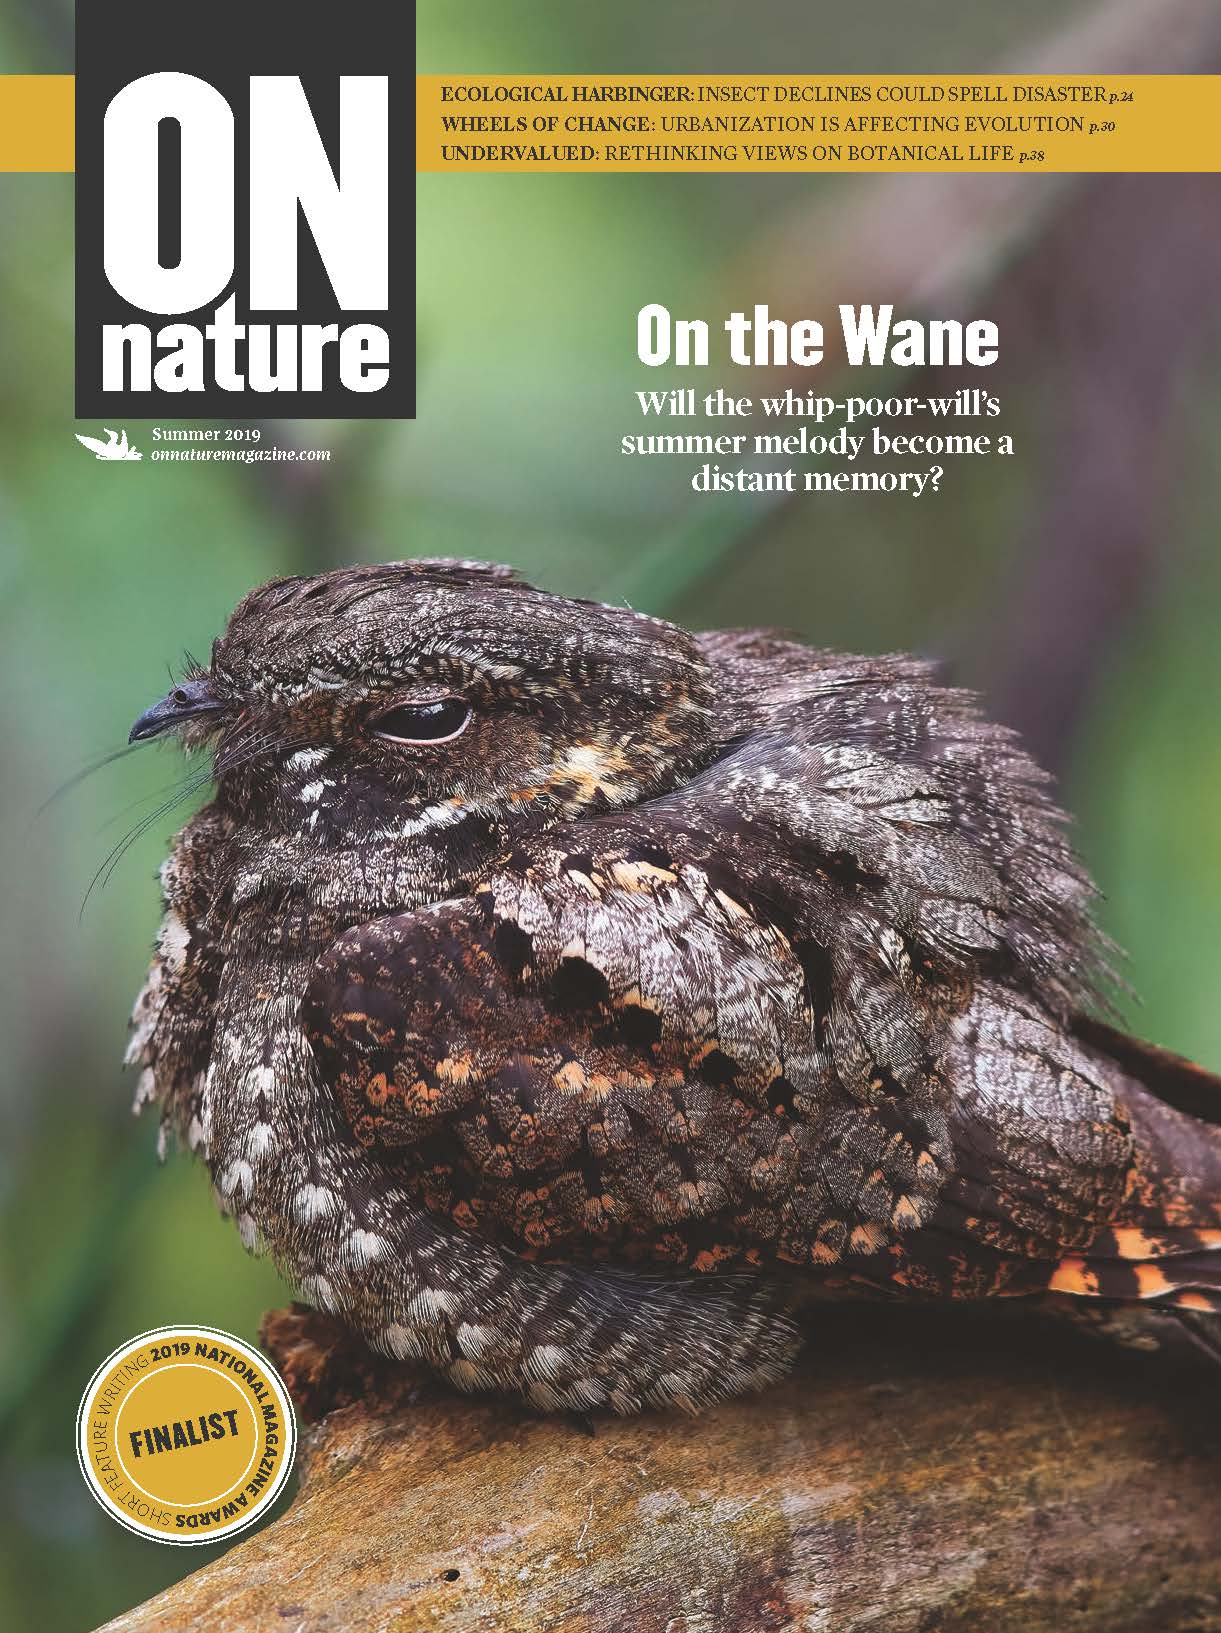 ON Nature Summer 2019 issue